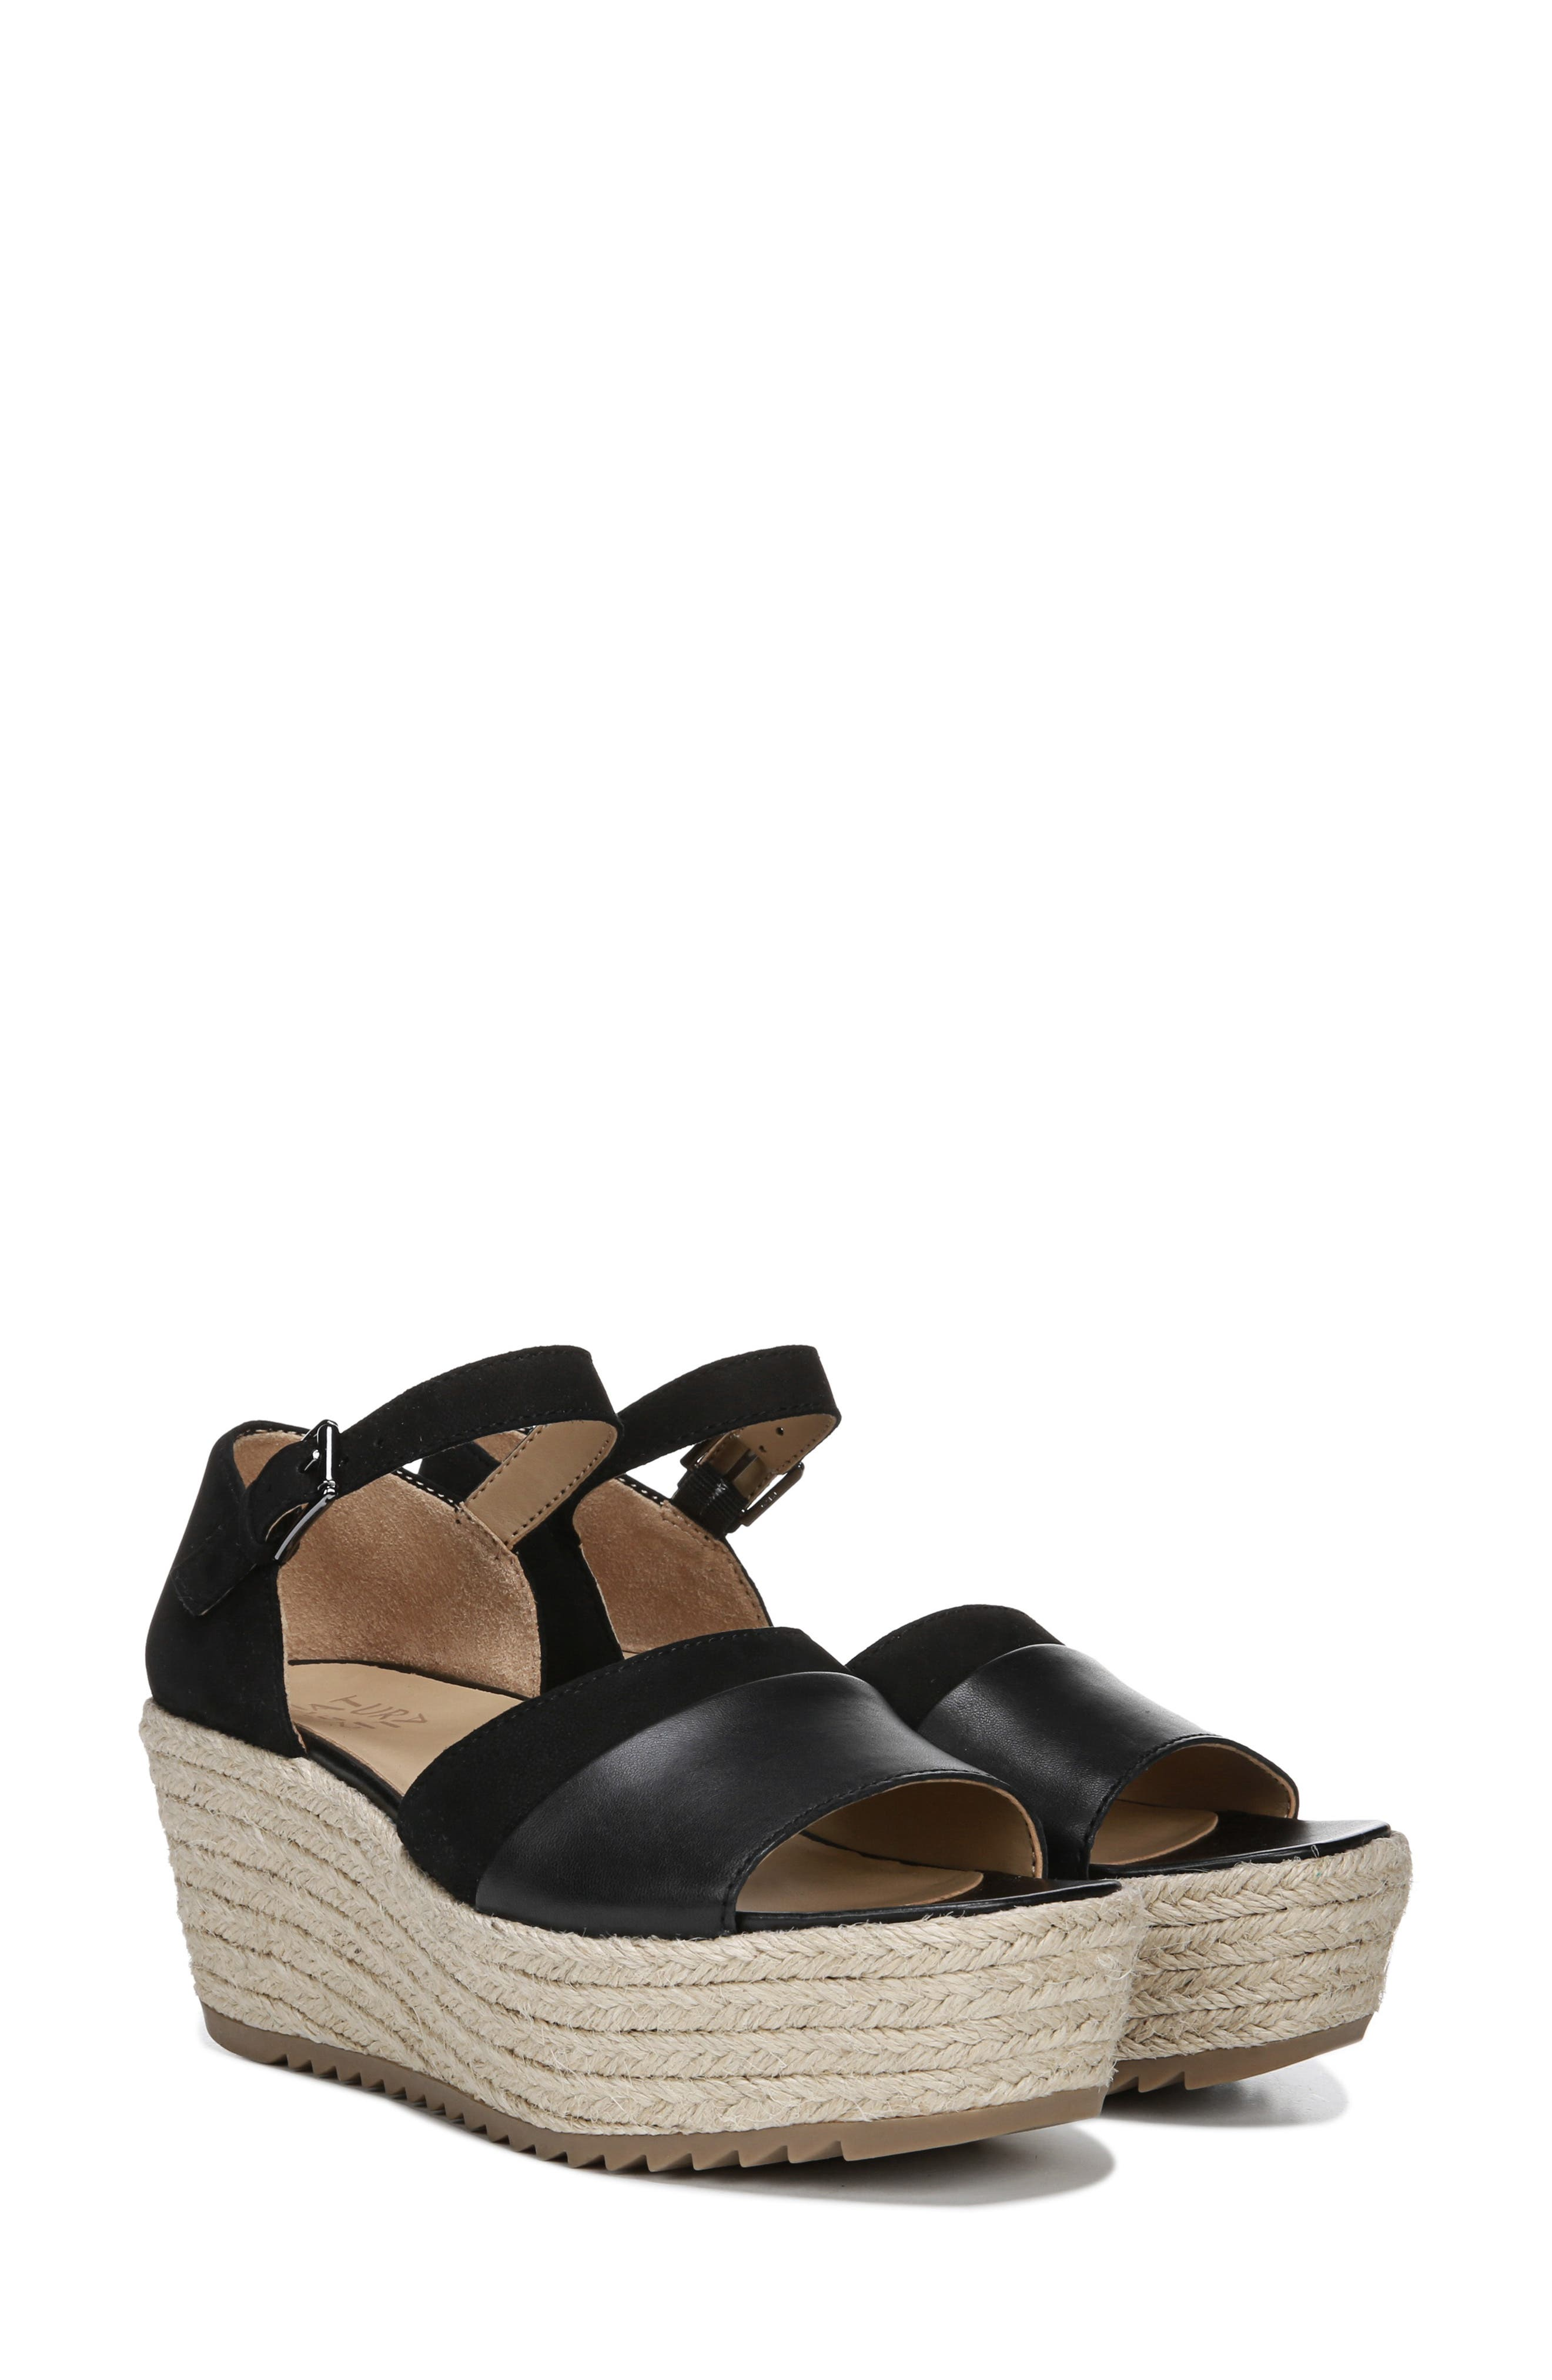 NATURALIZER, Opal Espadrille Platform Wedge Sandal, Alternate thumbnail 9, color, BLACK LEATHER